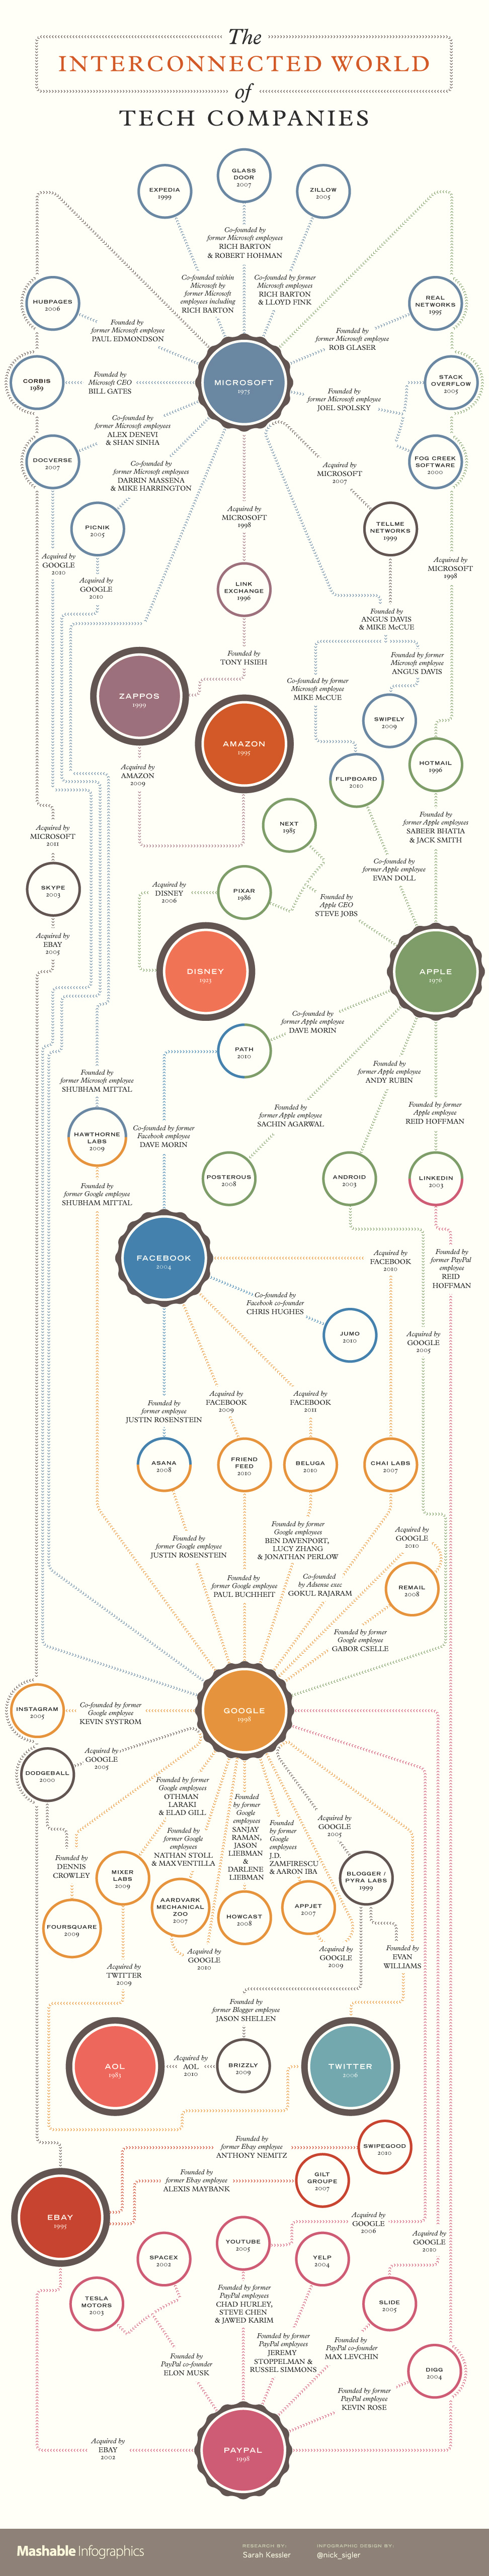 mashable_infographic_interconnected-tech-companies